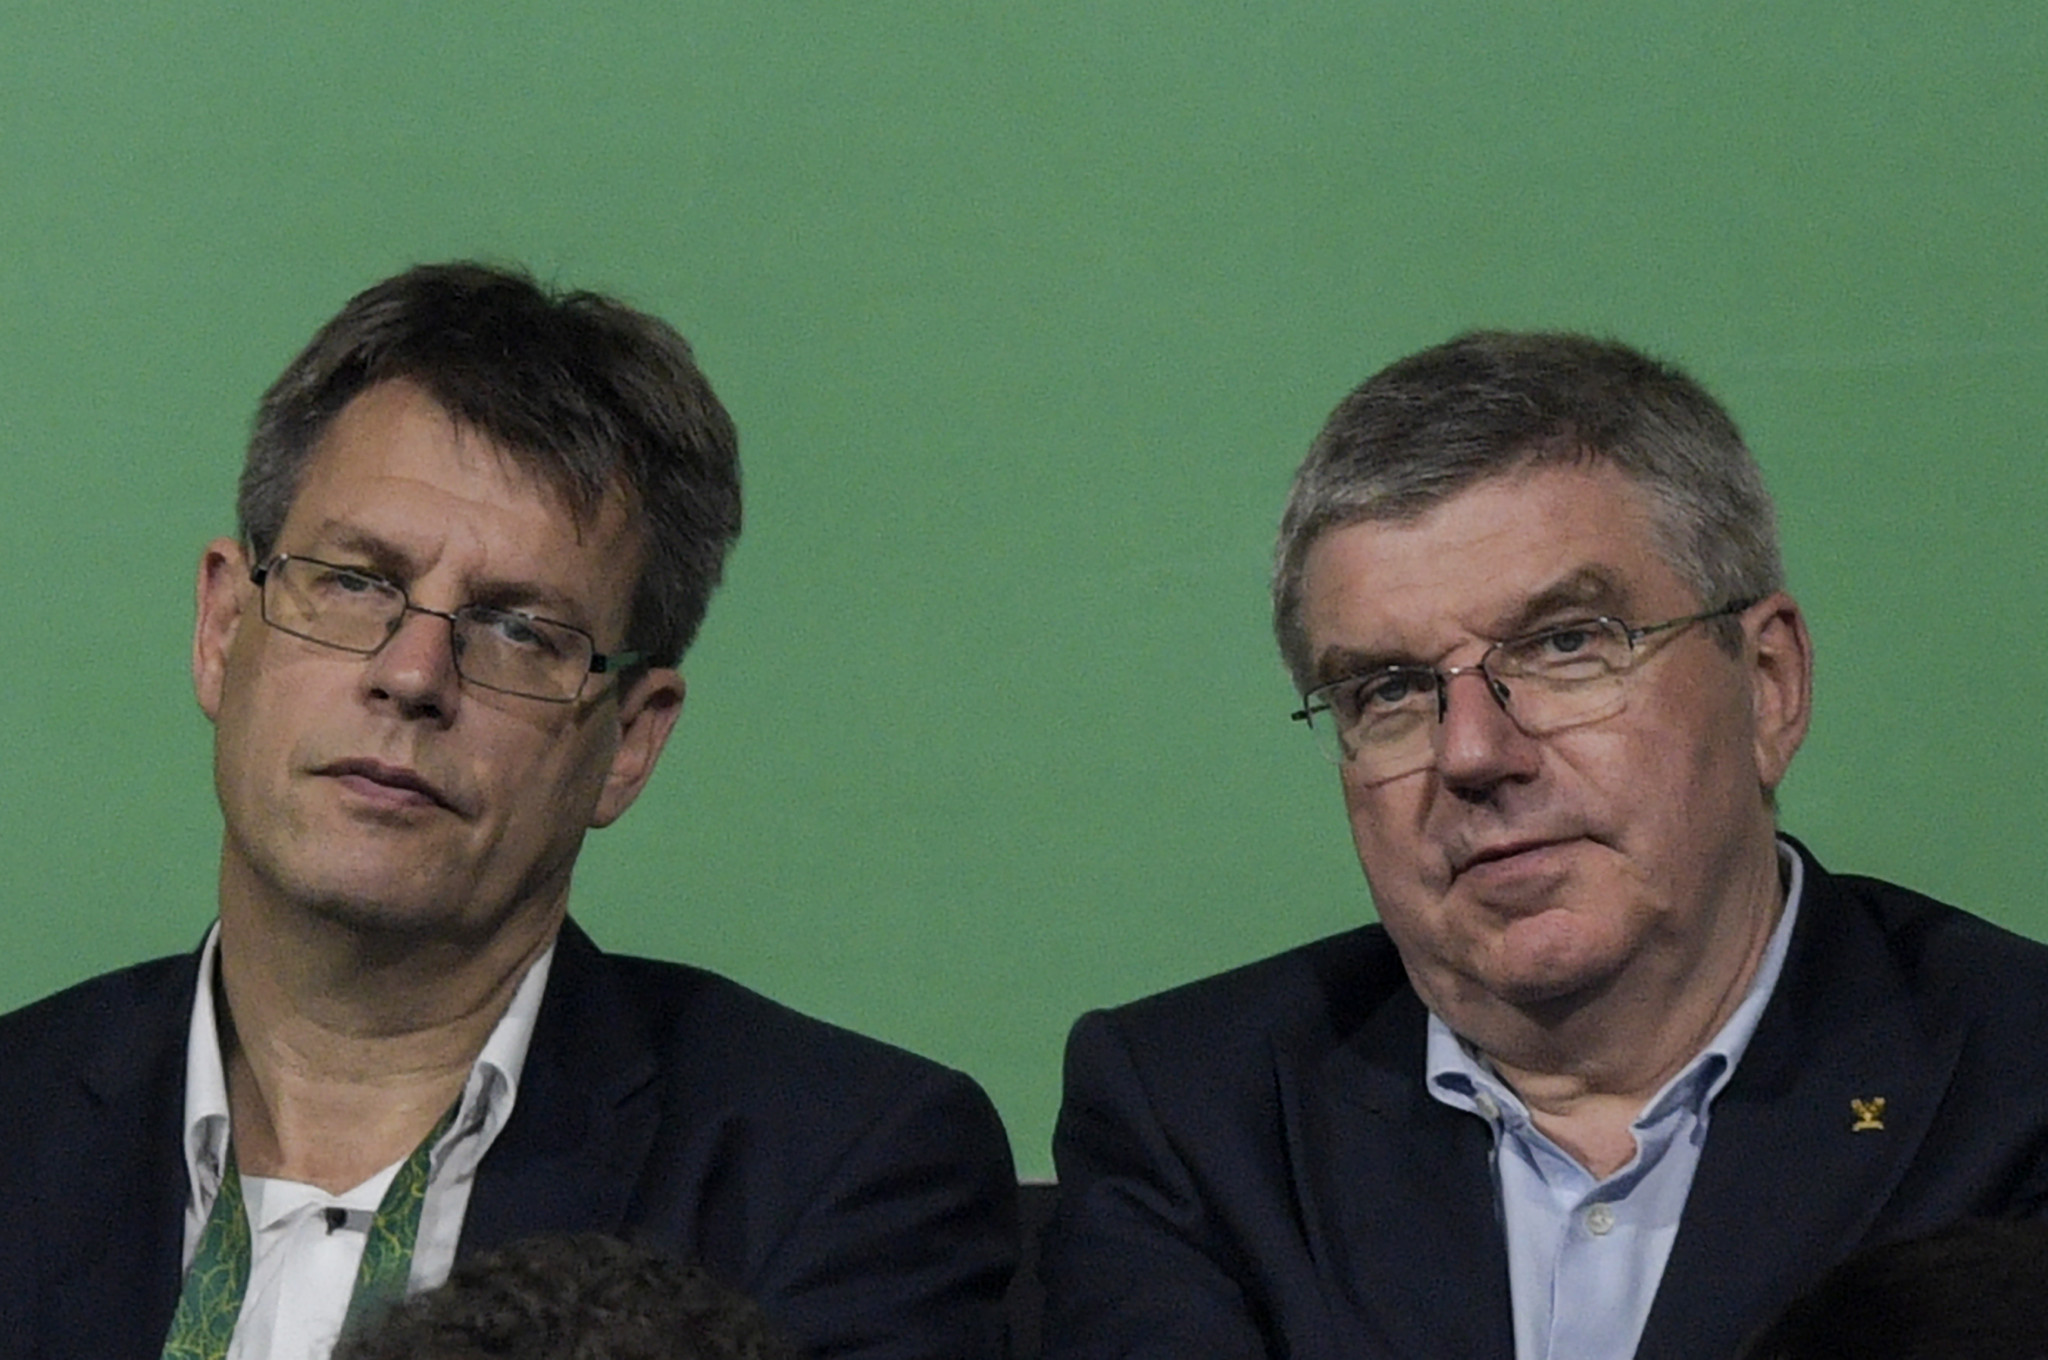 ITTF President Thomas Weikert, left, has come under fire from two of his most senior officials ©Getty Images